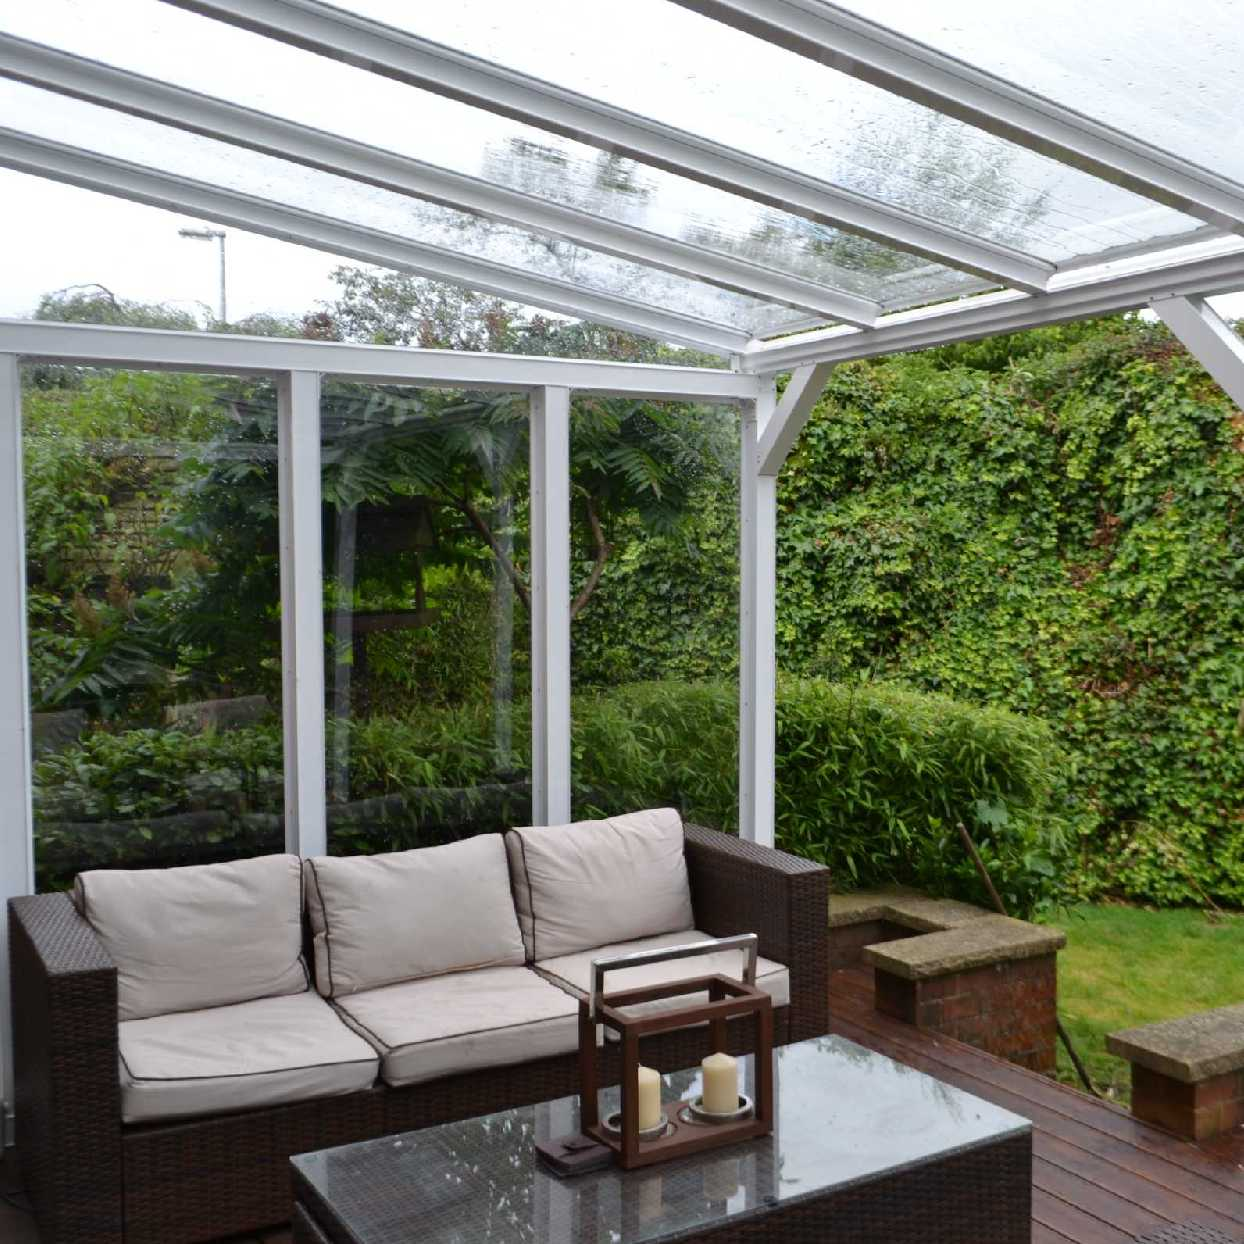 Great selection of Omega Smart White Lean-To Canopy with 16mm Polycarbonate Glazing - 8.4m (W) x 4.5m (P), (4) Supporting Posts